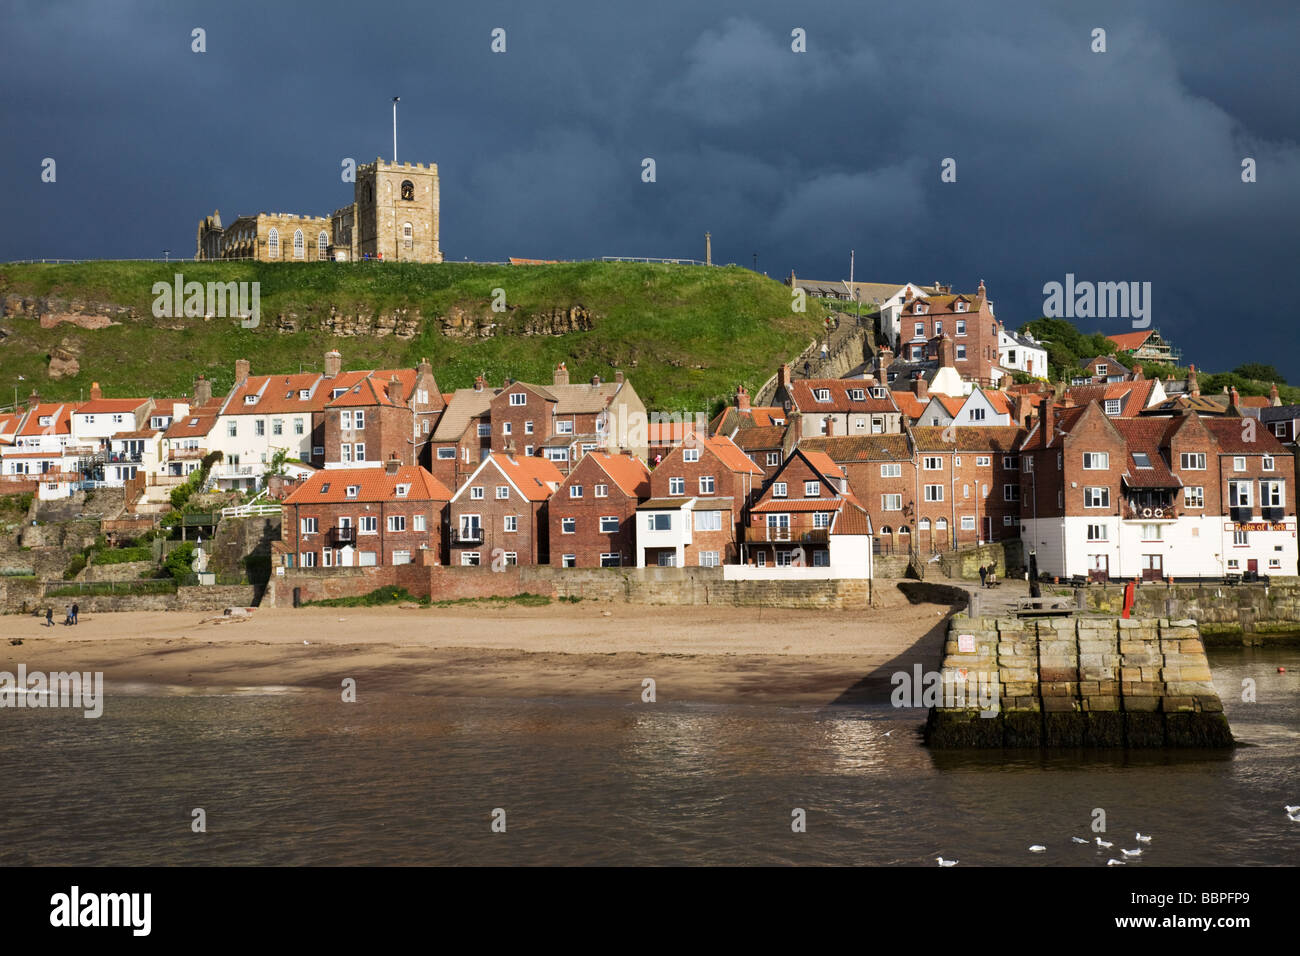 Whitby after a storm, North Yorkshire, England, UK. - Stock Image